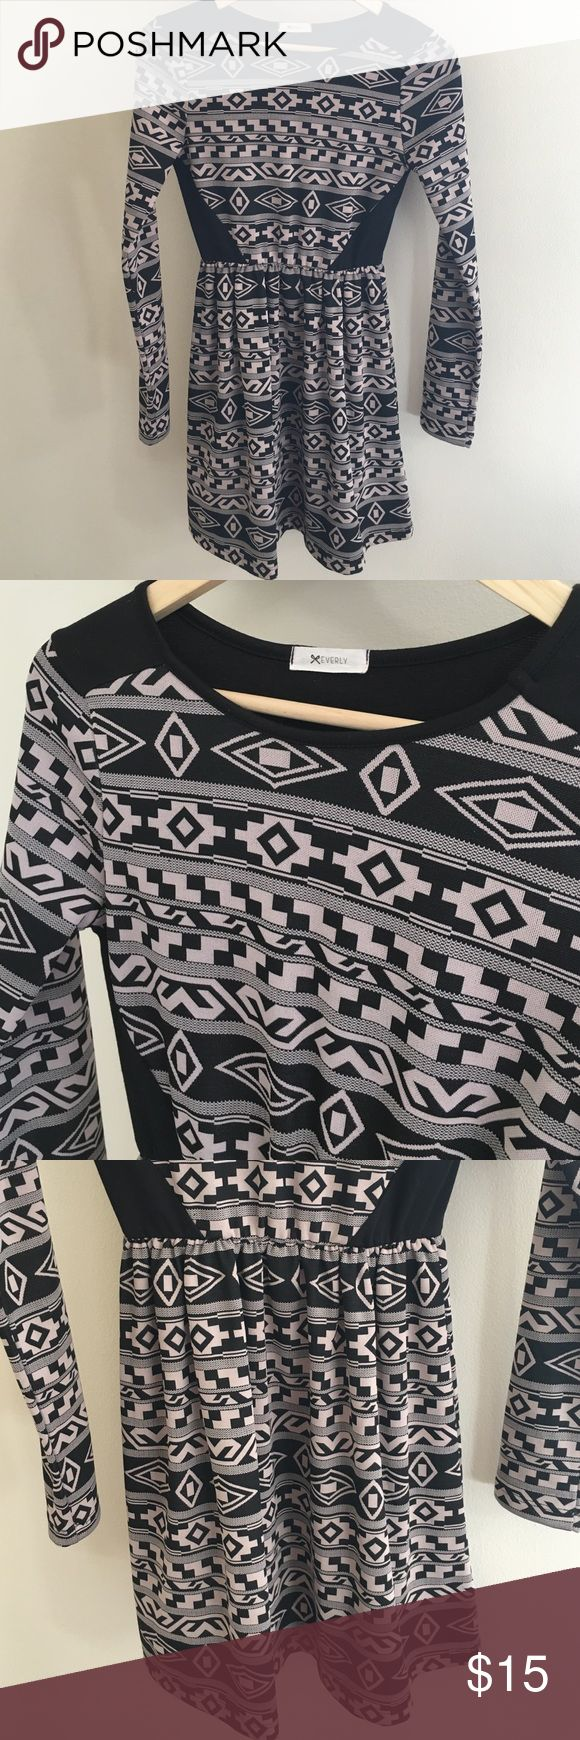 🎀 Everly Aztec dress Everly Aztec print, long sleeve dress. Comfy stretchy material. Worn once Everly Dresses Long Sleeve